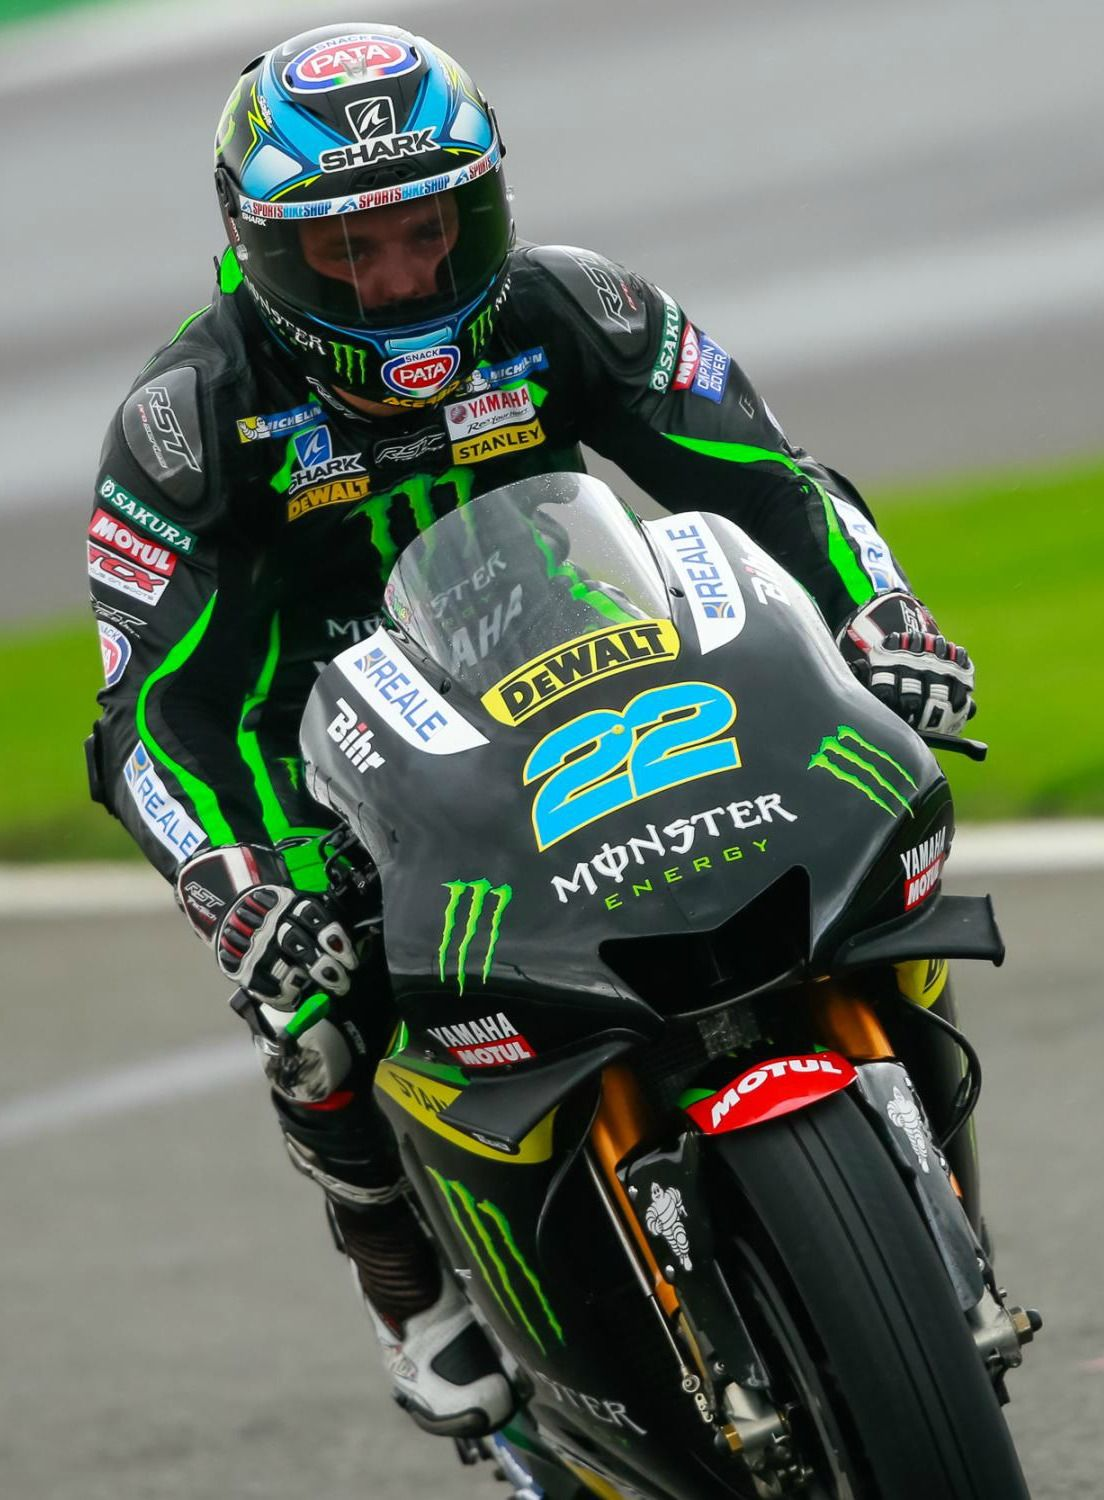 Alex Lowes Finished 13th In His Debut Race At The Britishgp In Silverstone Sportfahrrad Leder